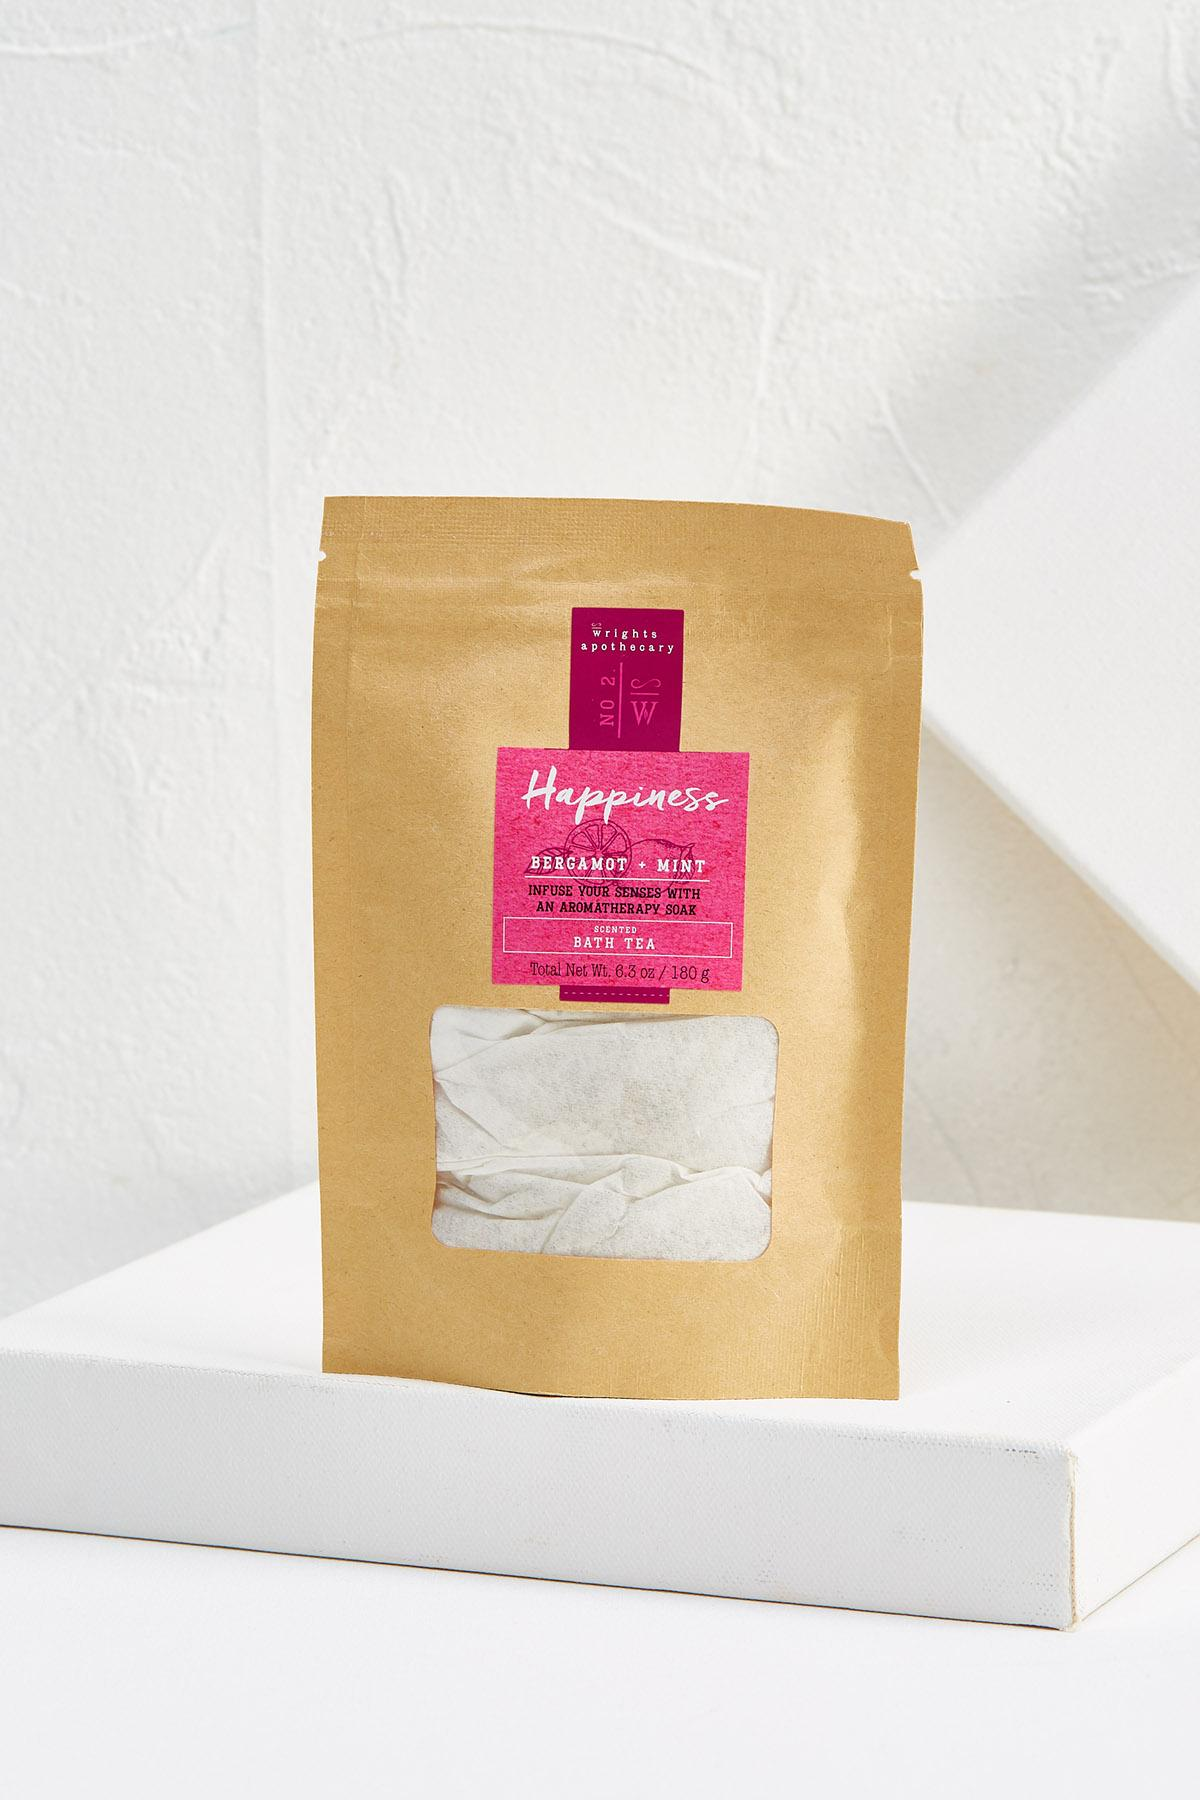 Happiness Aromatherapy Bath Soak